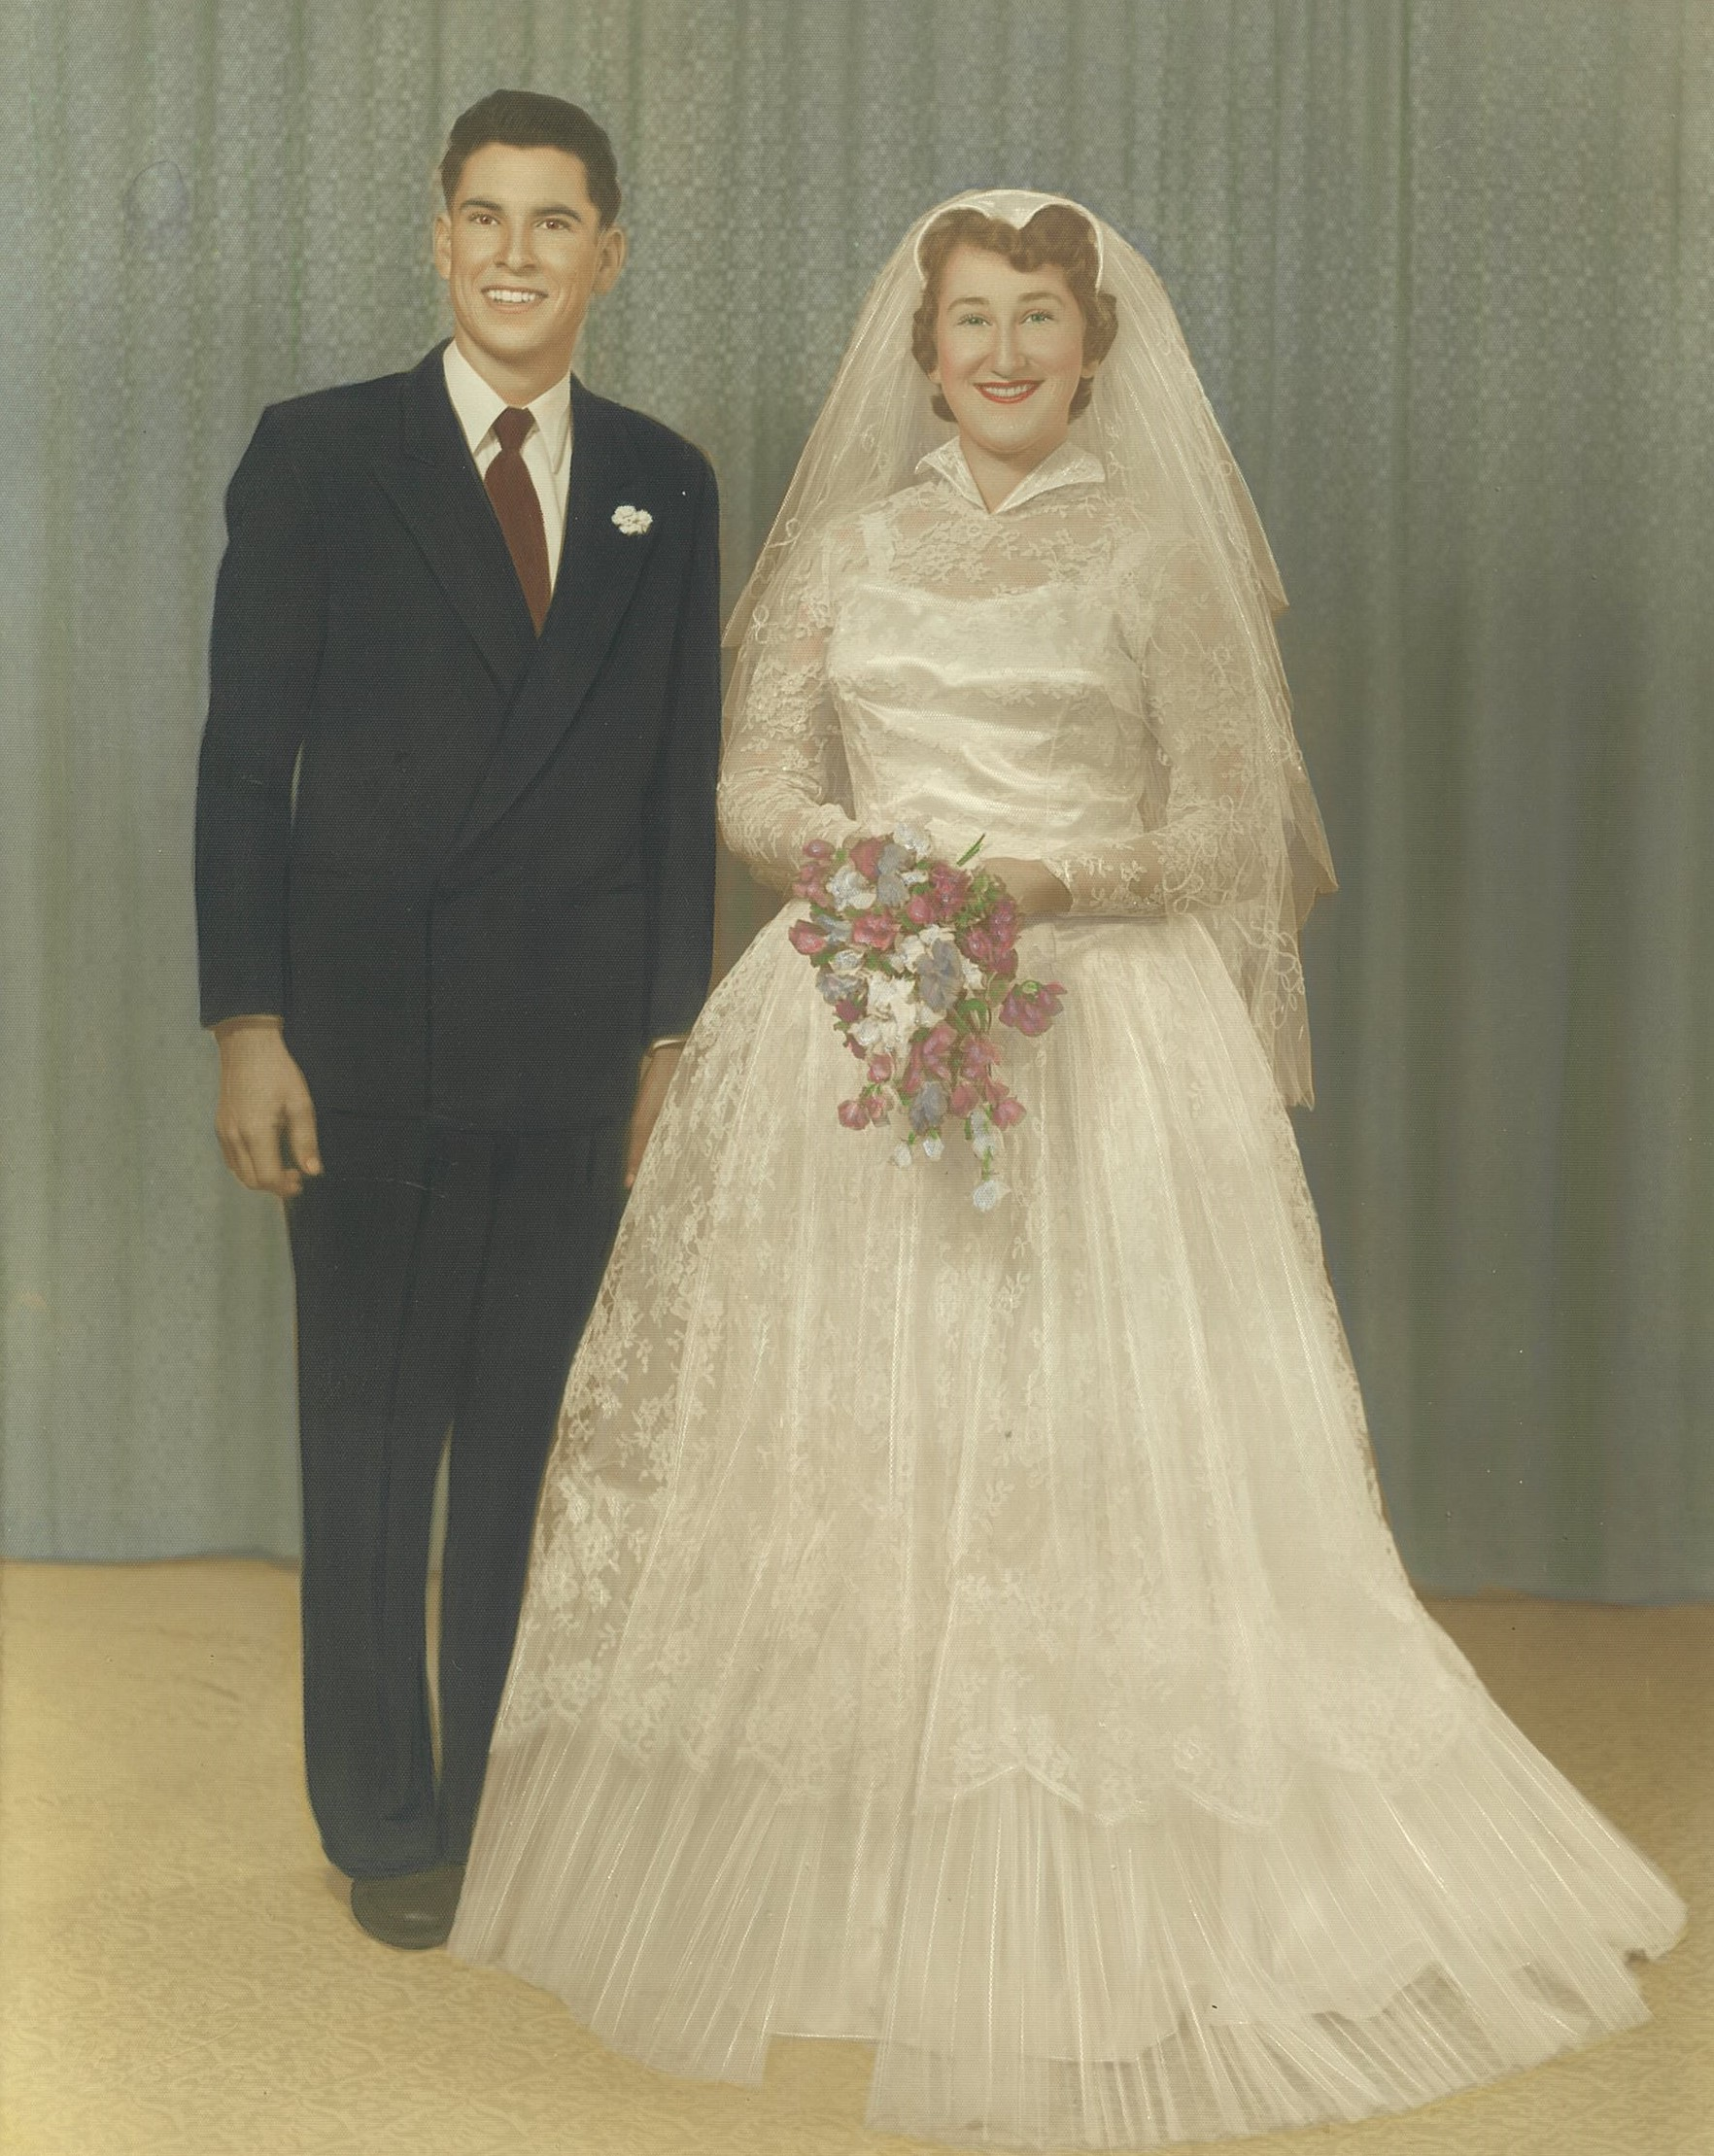 Quiet 65th wedding anniversary for Boyce and Sally Alexander   PHOTOS